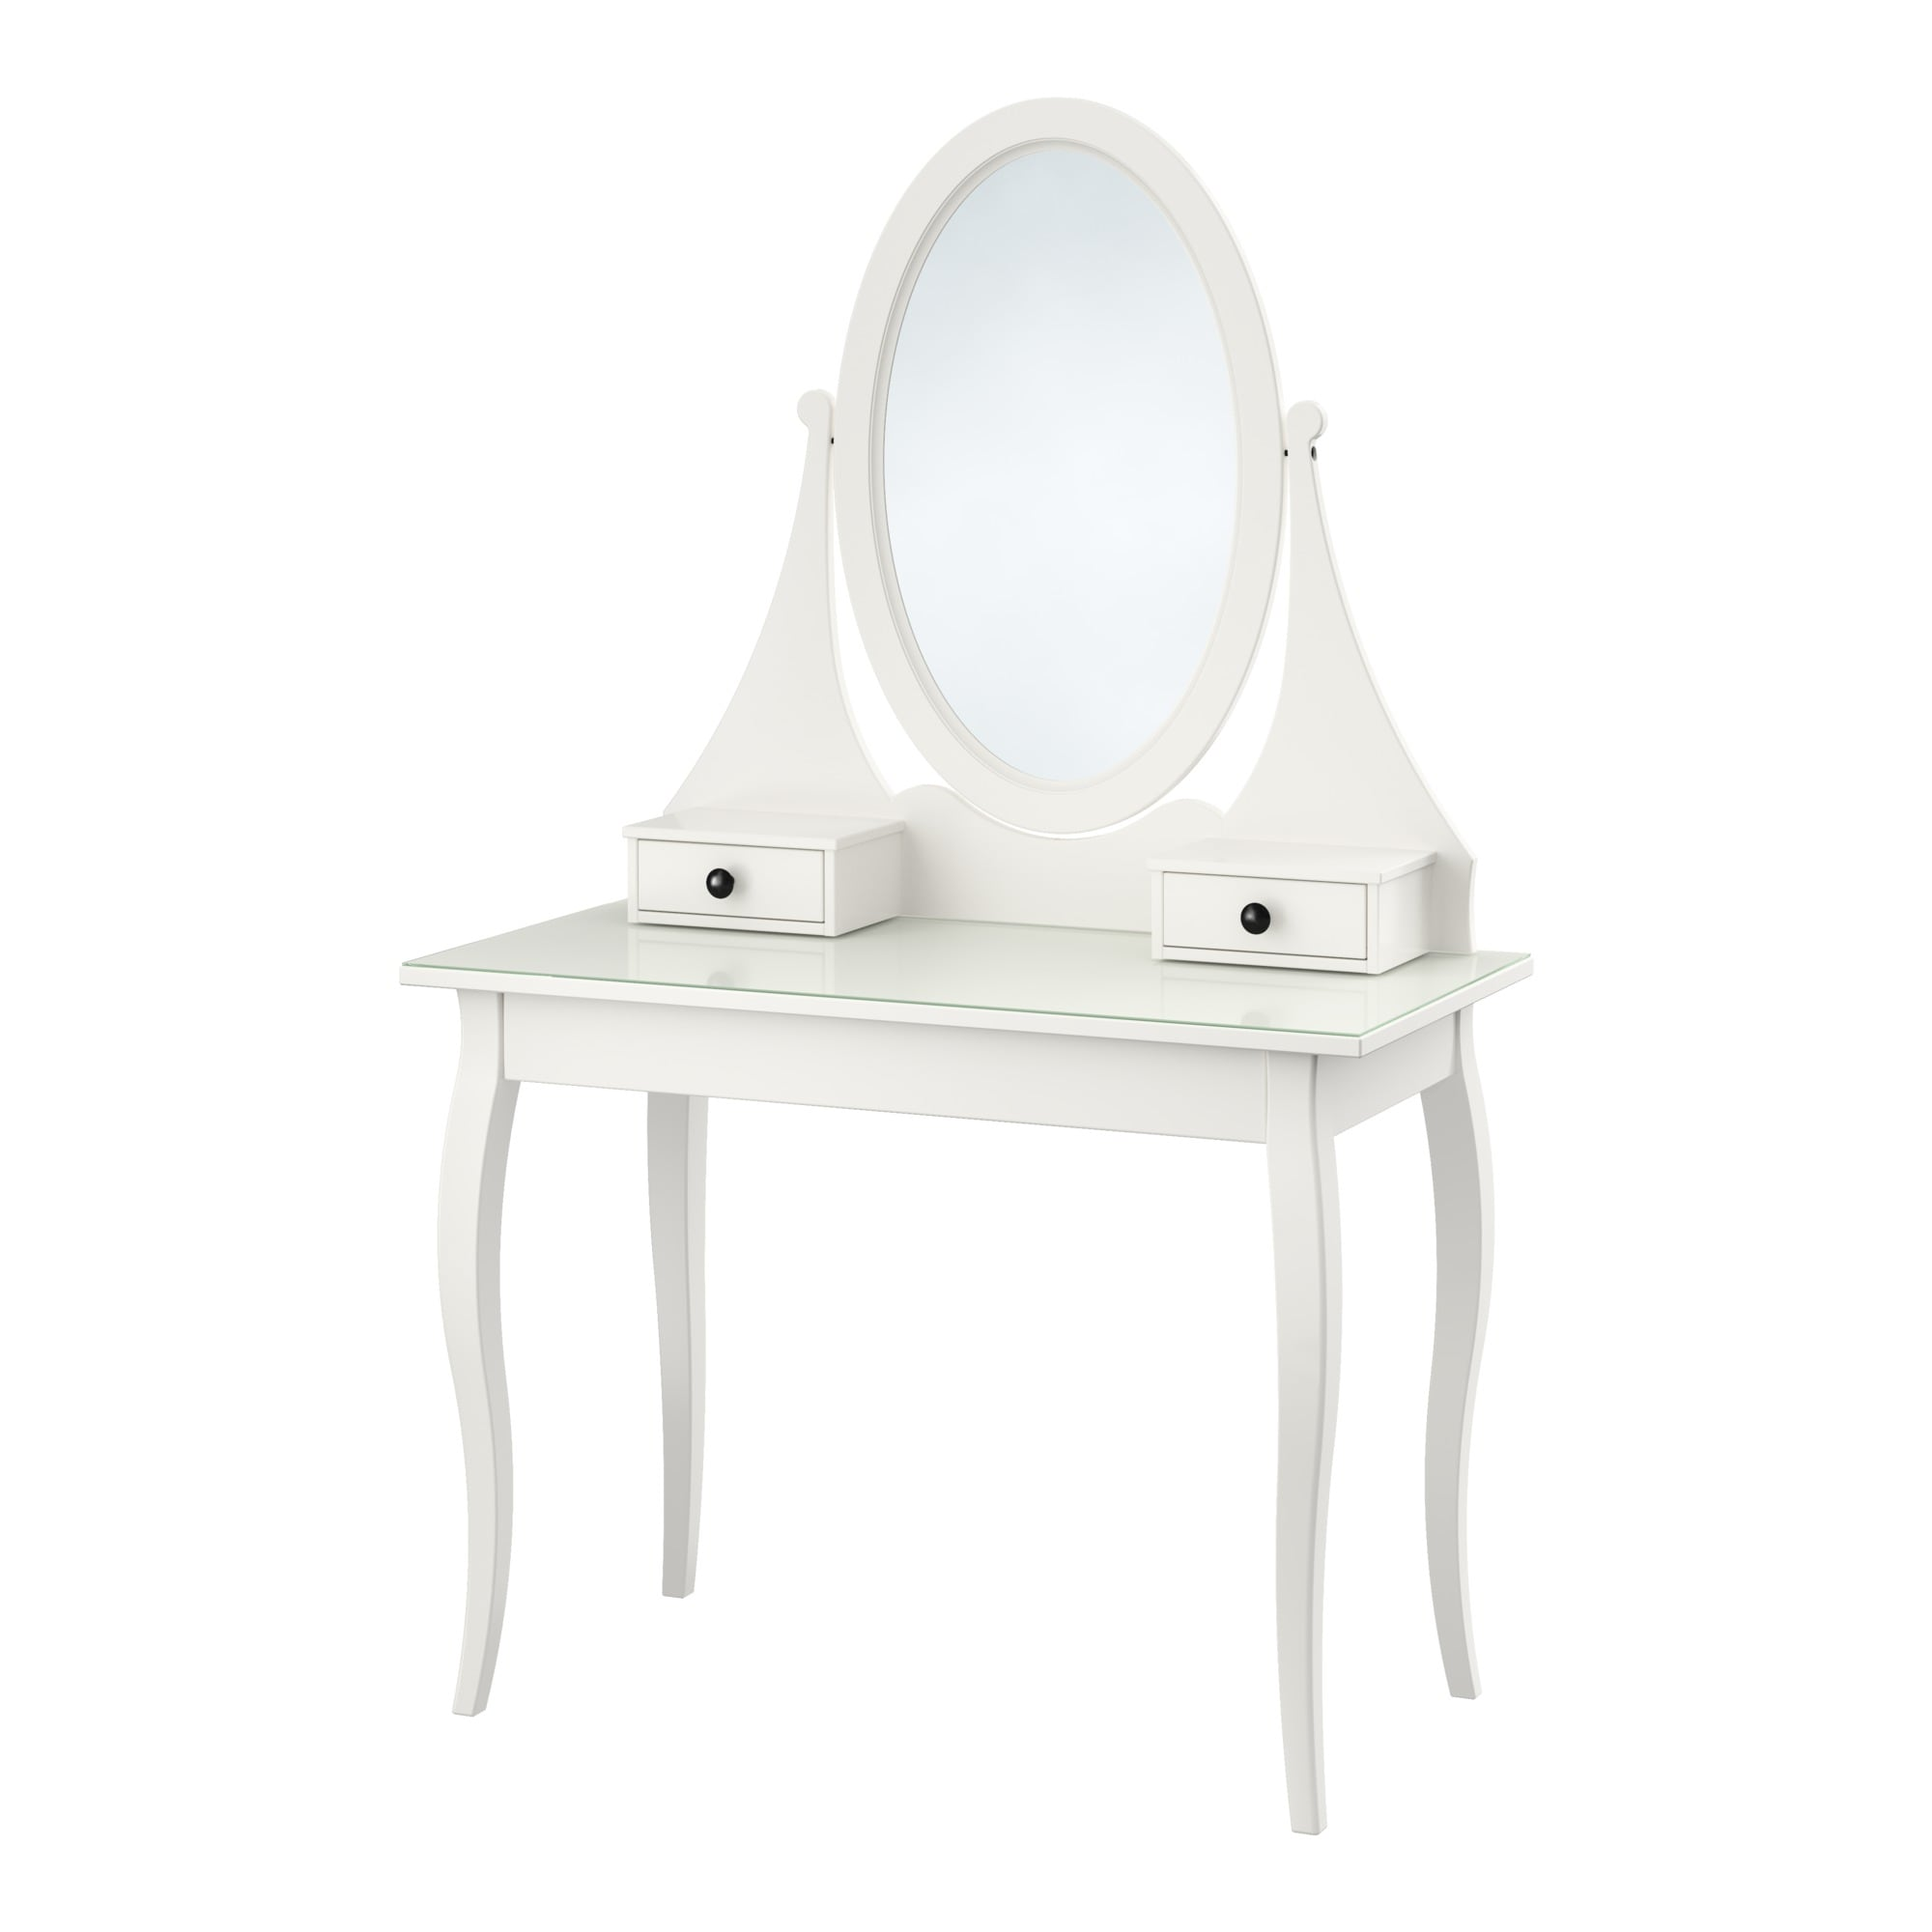 Dressing table mirrors ikea - Hemnes Dressing Table With Mirror White Width 39 3 8 Depth